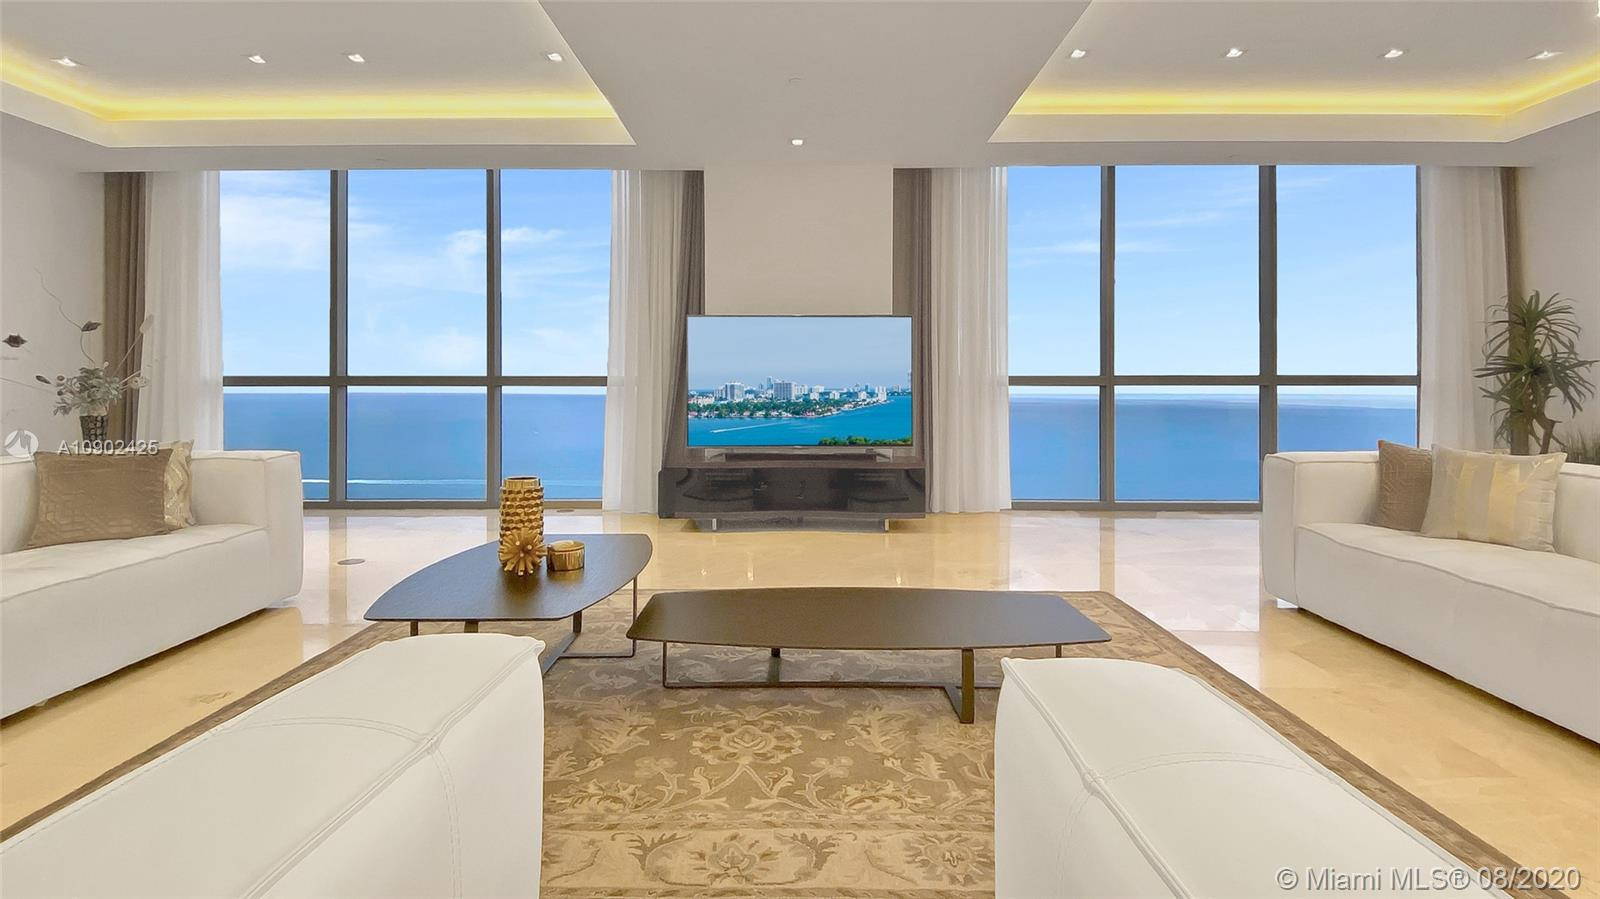 17749 Collins Ave, Unit #3901/3902 Luxury Real Estate